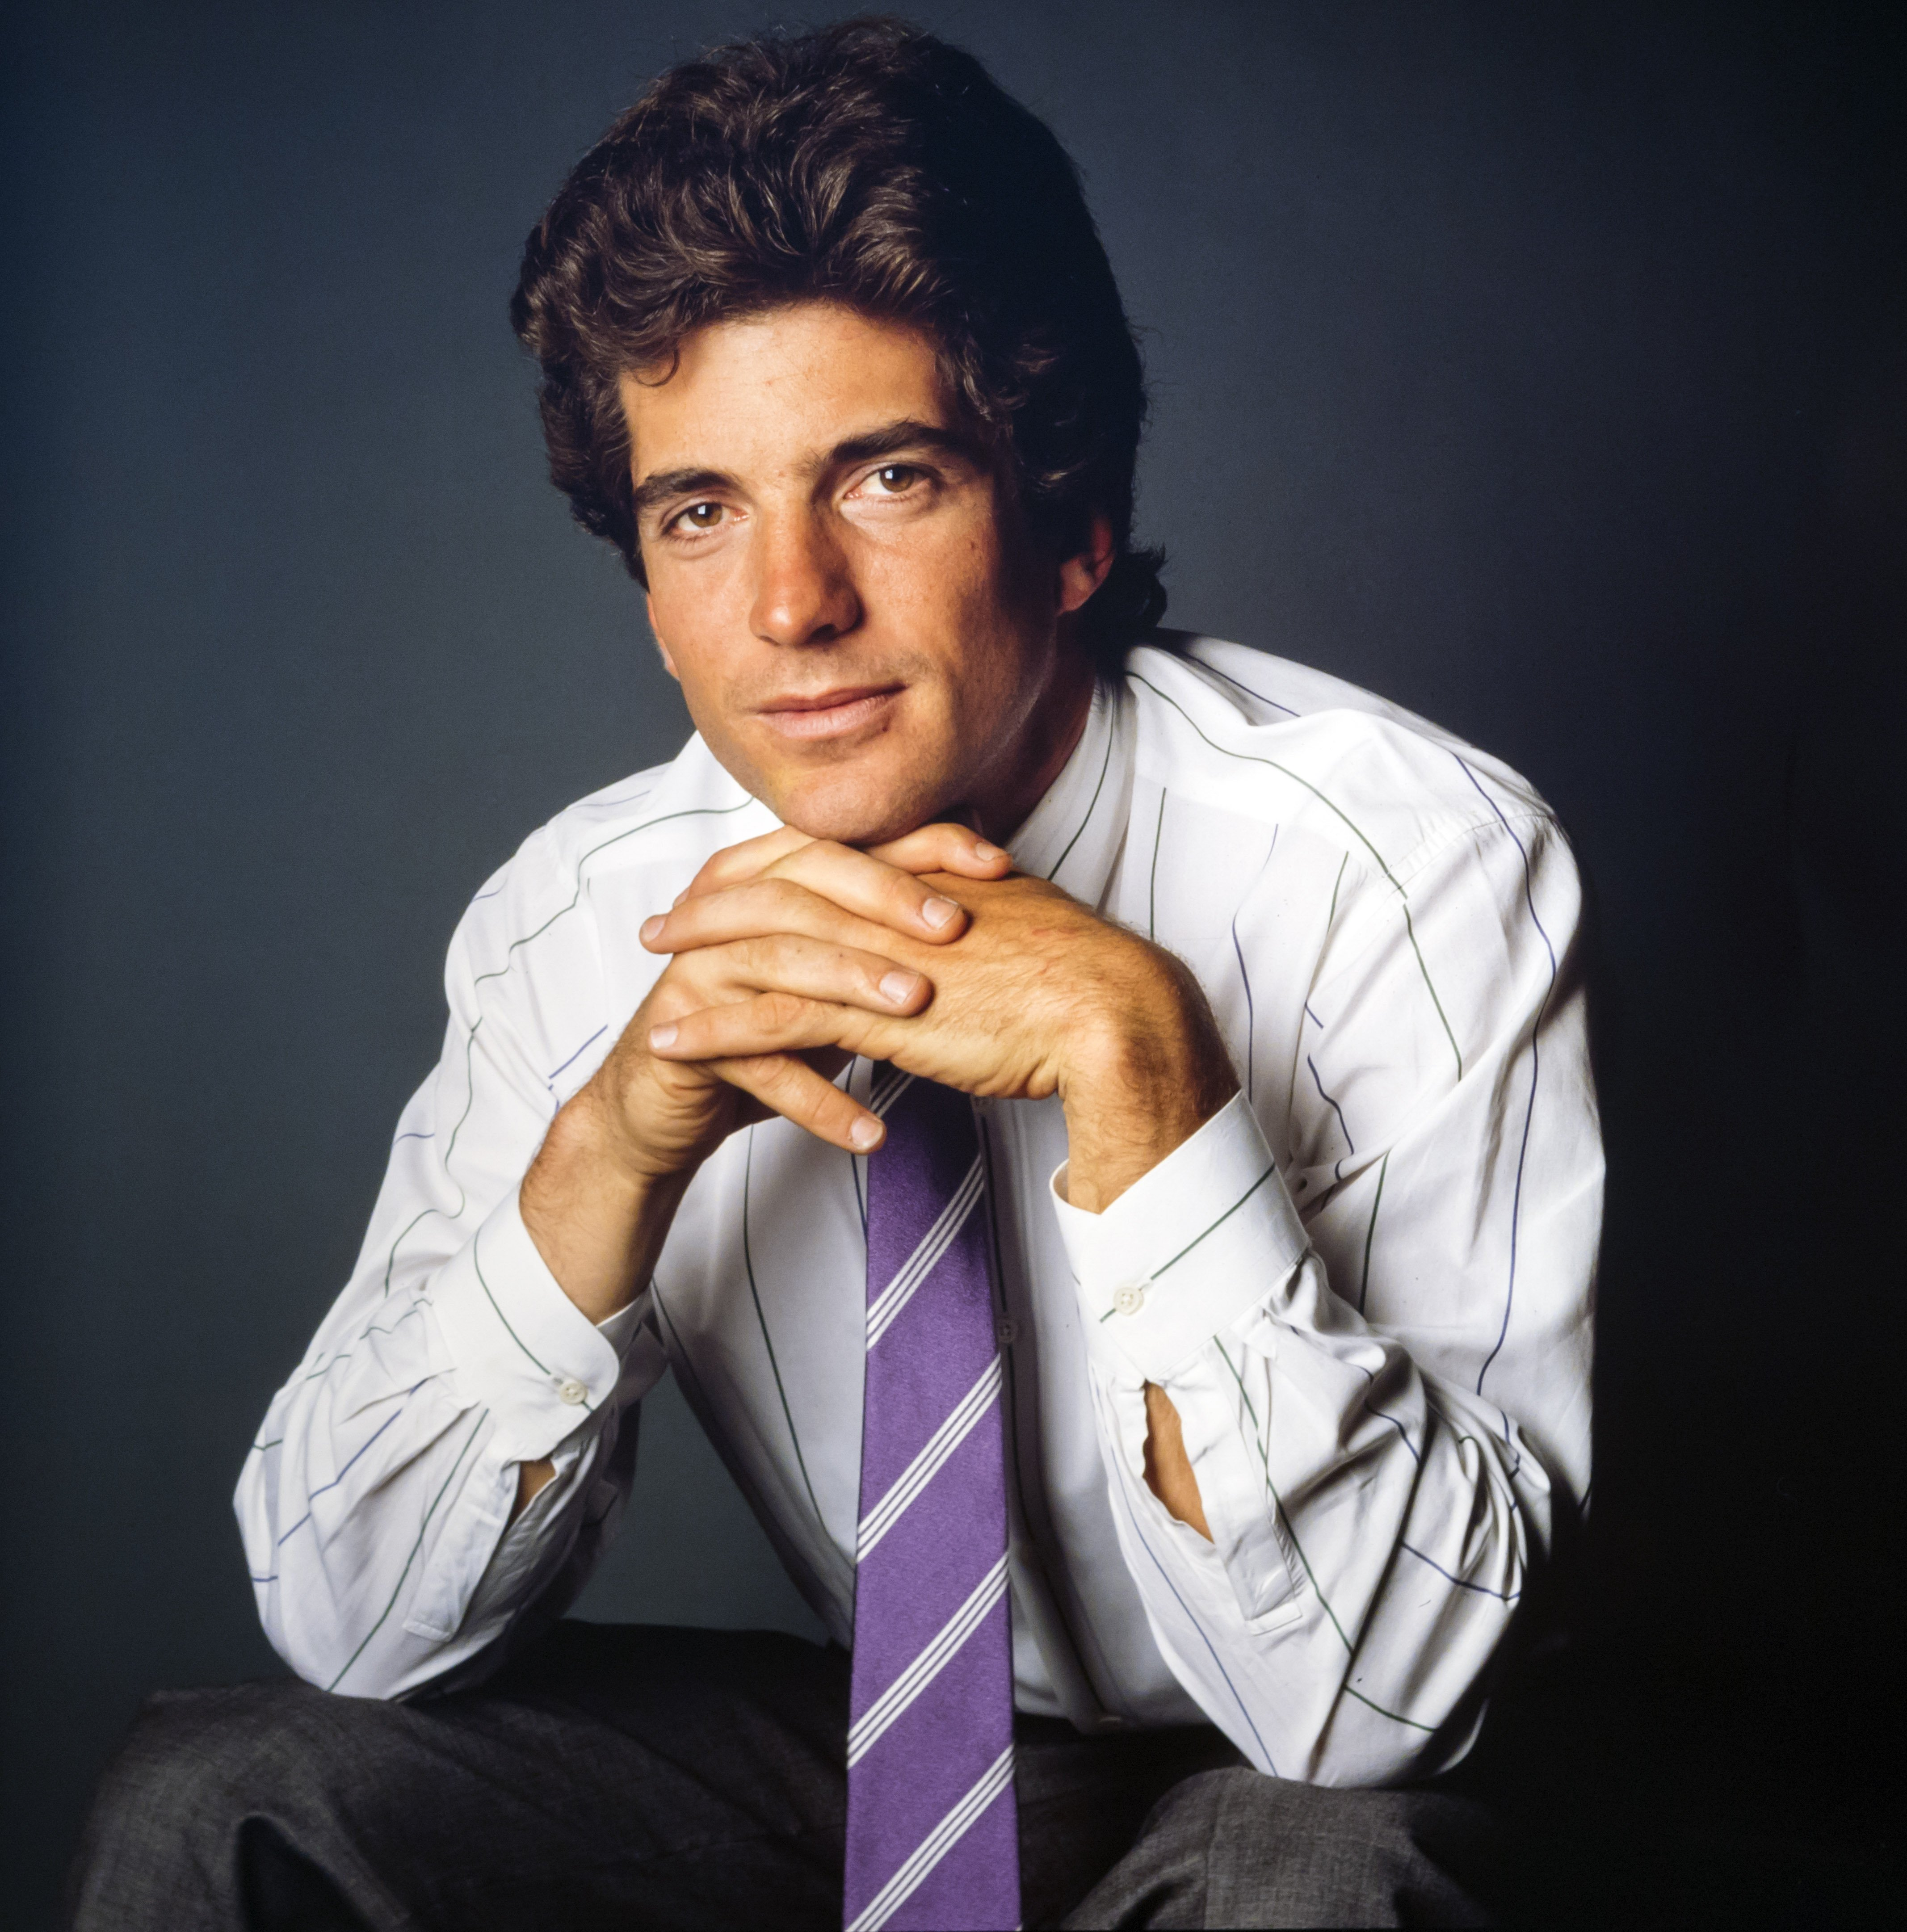 Studio portrait of American lawyer and magazine publisher John F Kennedy Jr., New York, 1988 | Photo: Getty Images